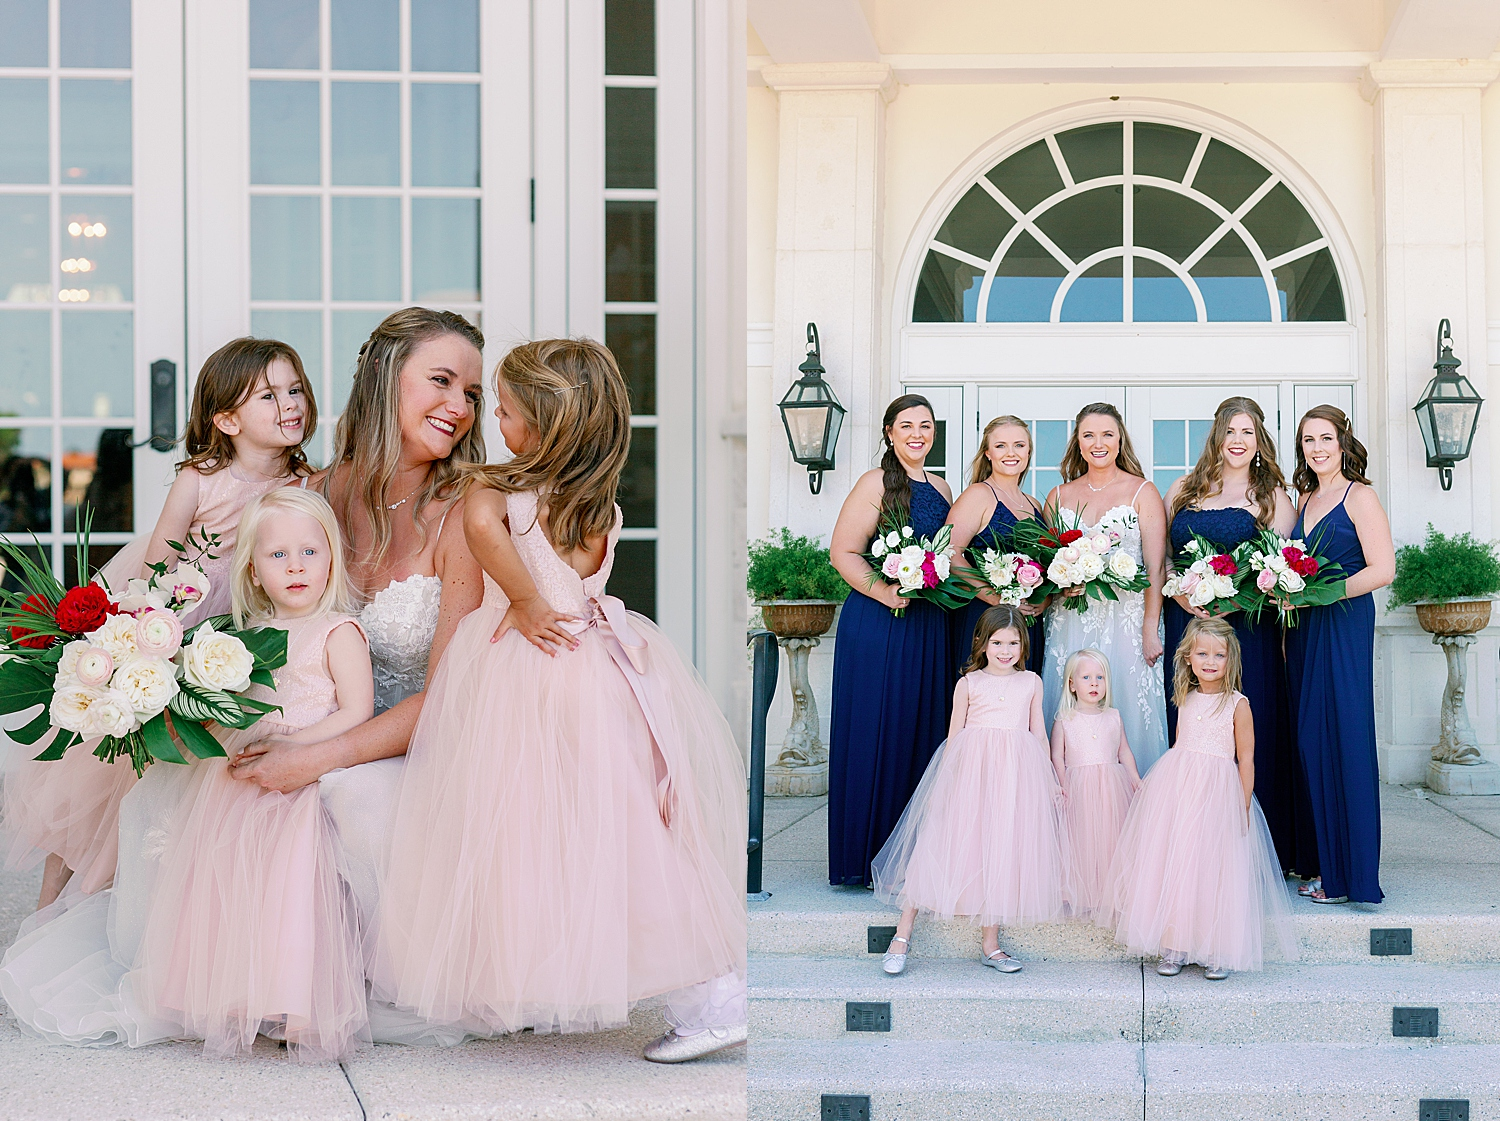 Bride with flowers girls in blush pink dresses